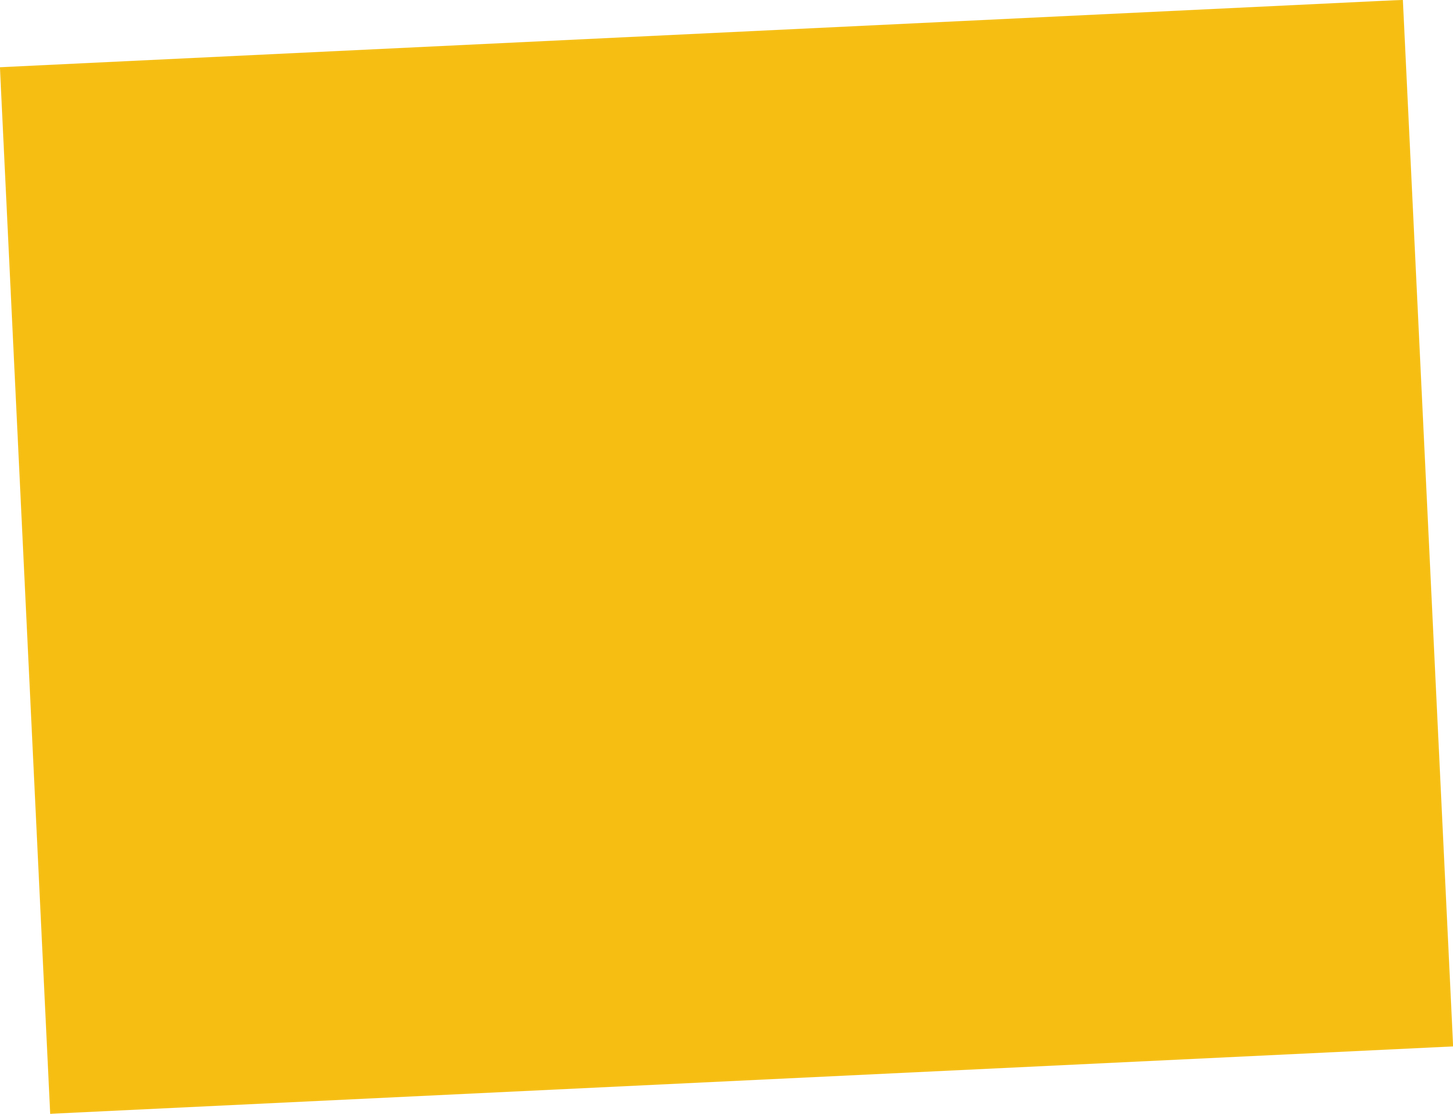 YELLOW BOX.png